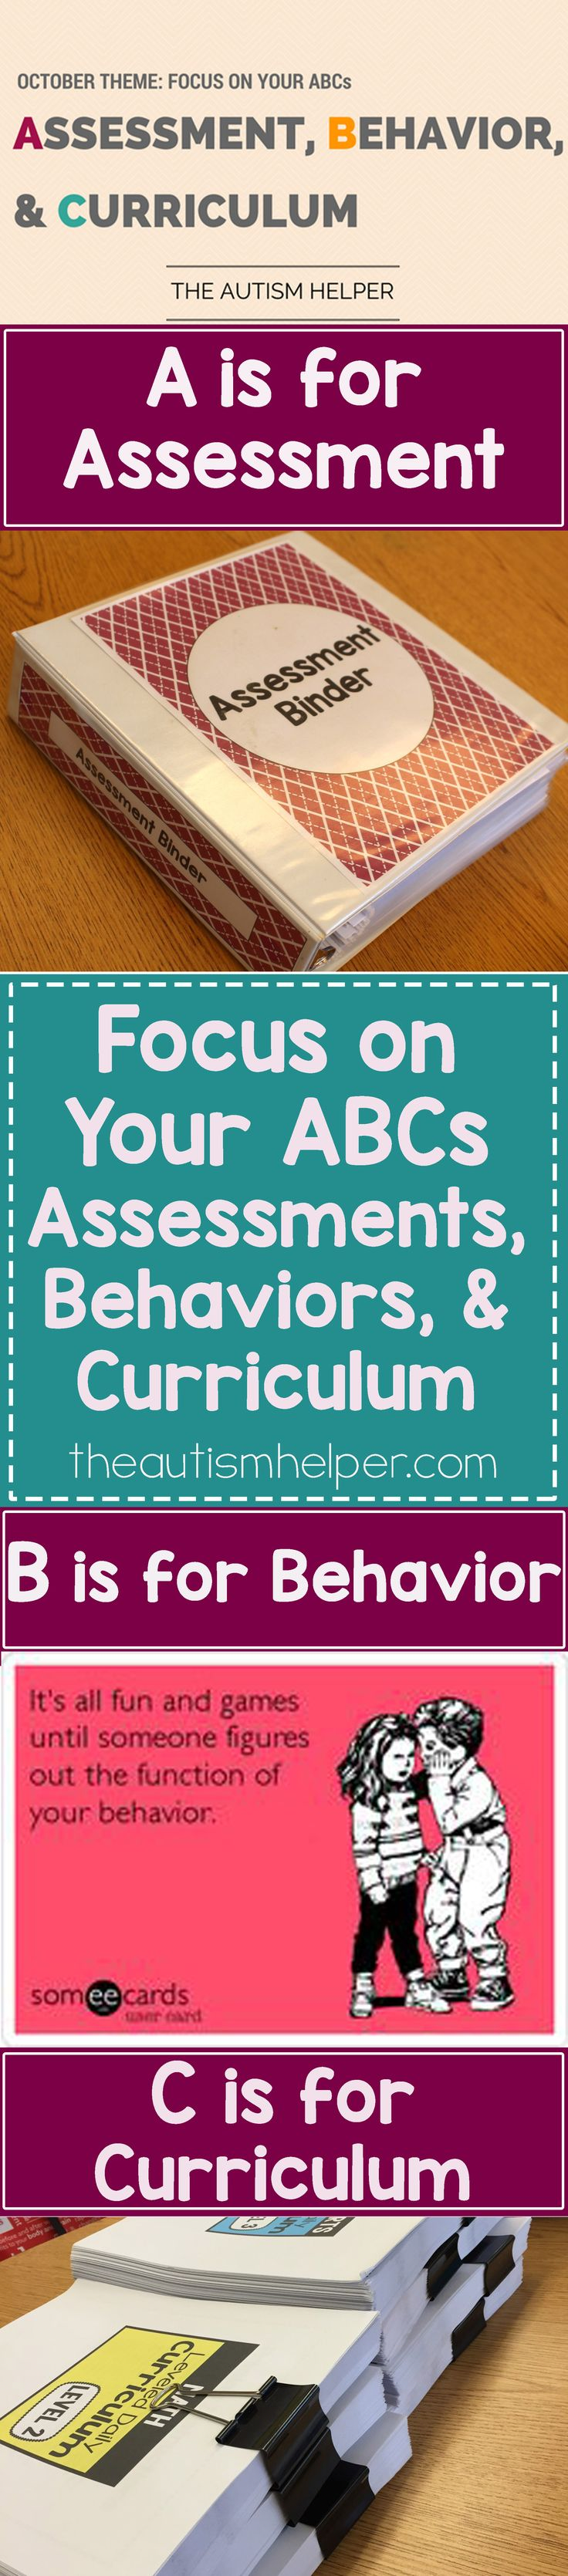 We're focusing on the ABC's of October by Assessing students' level of learning, implementing Behavior interventions, & beginning to set up Curriculum. We know this isn't easy, but it's time to go after the meat and potatoes of our school year!! From theautismhelper.com #theautismhelper